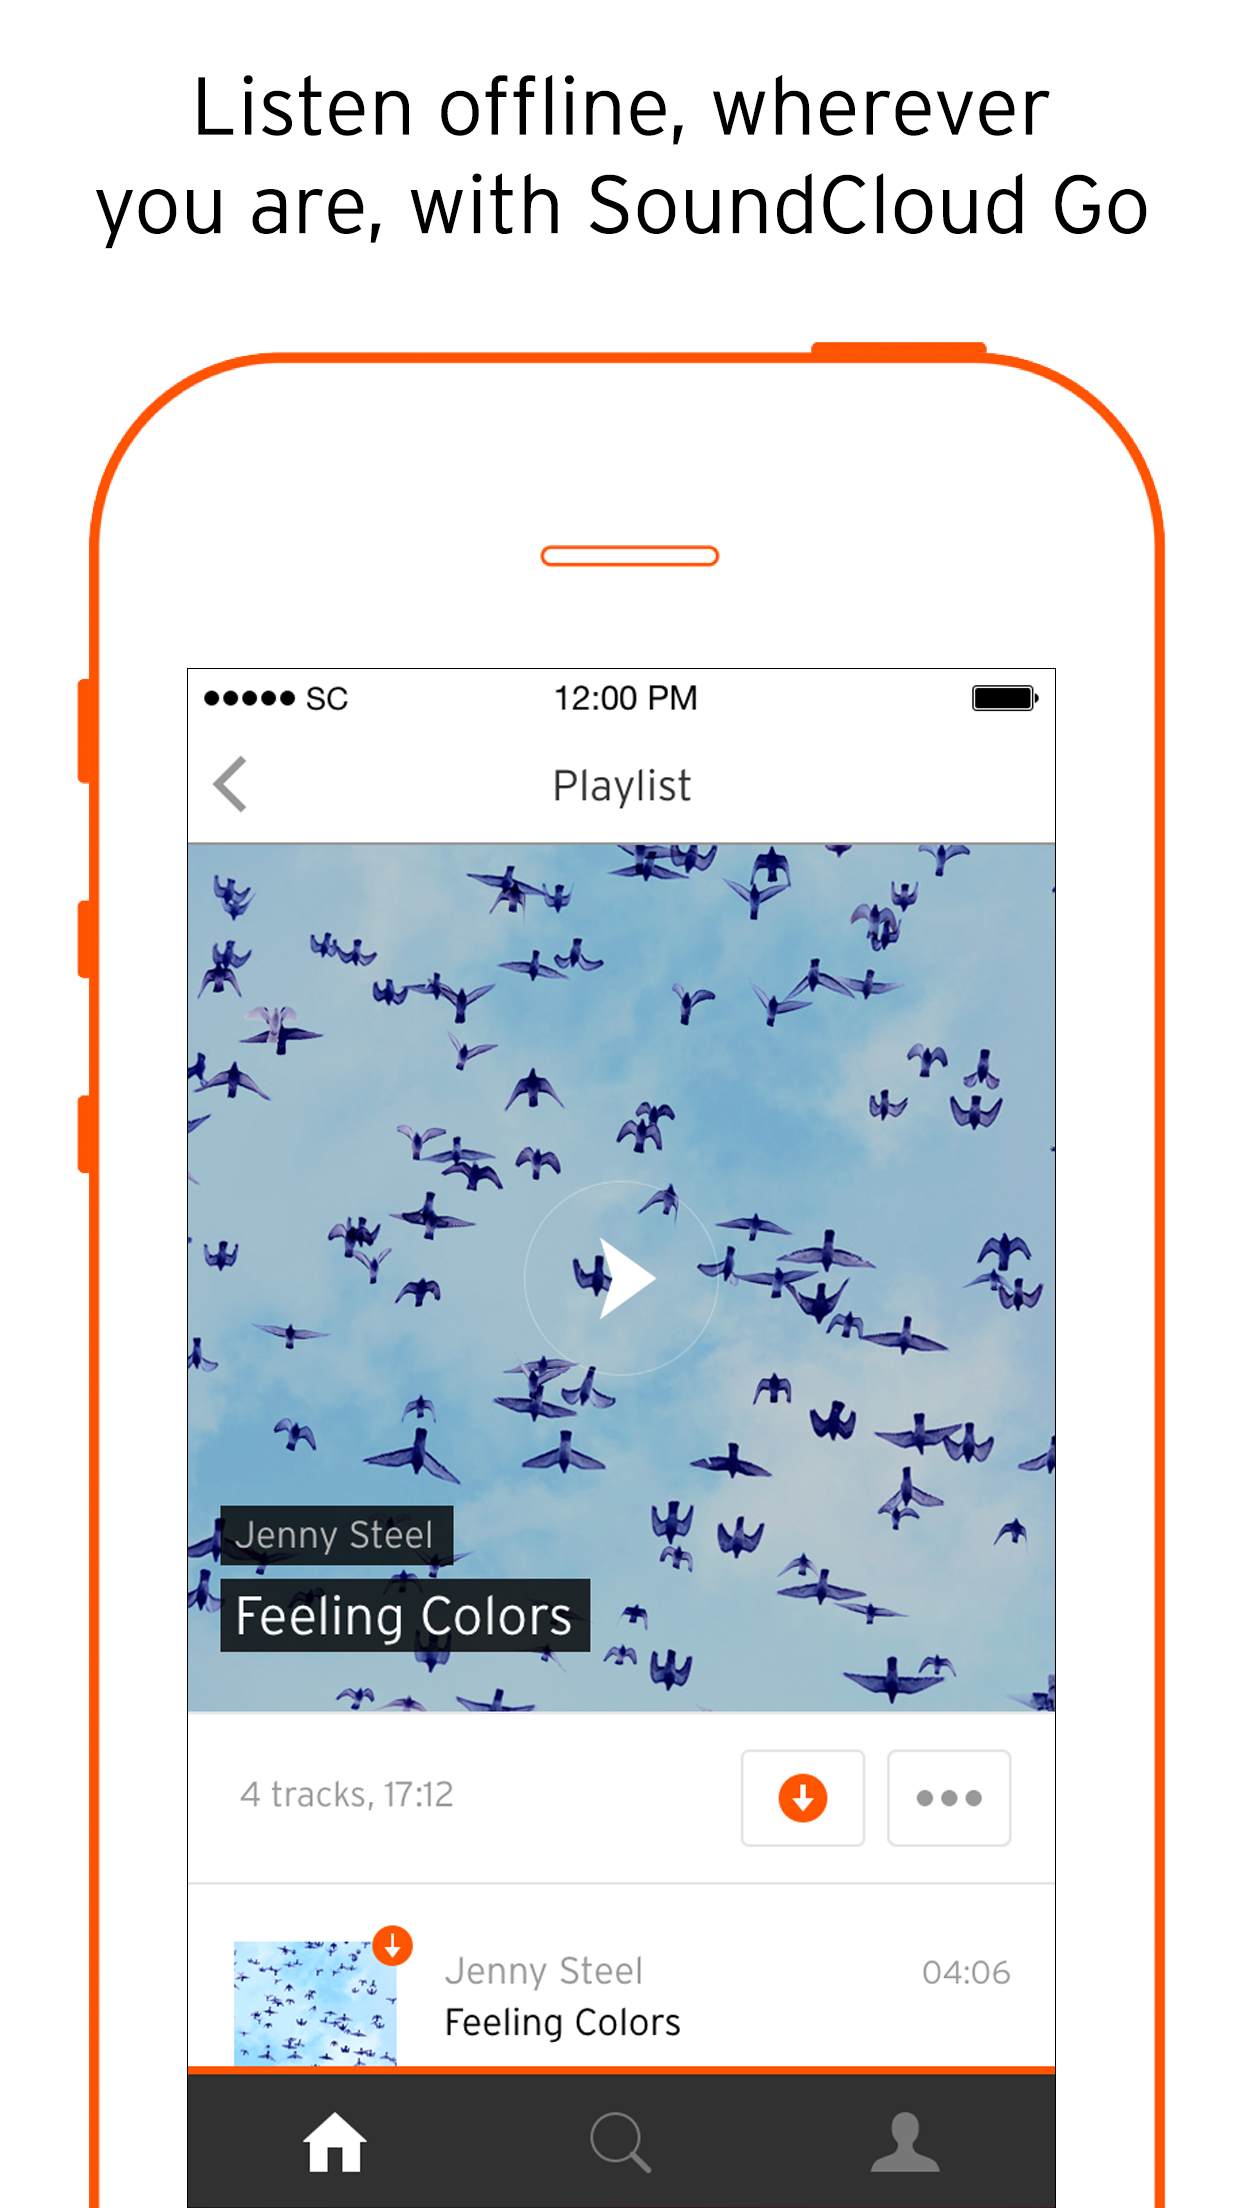 With SoundCloud Go, users can download songs to play offline.